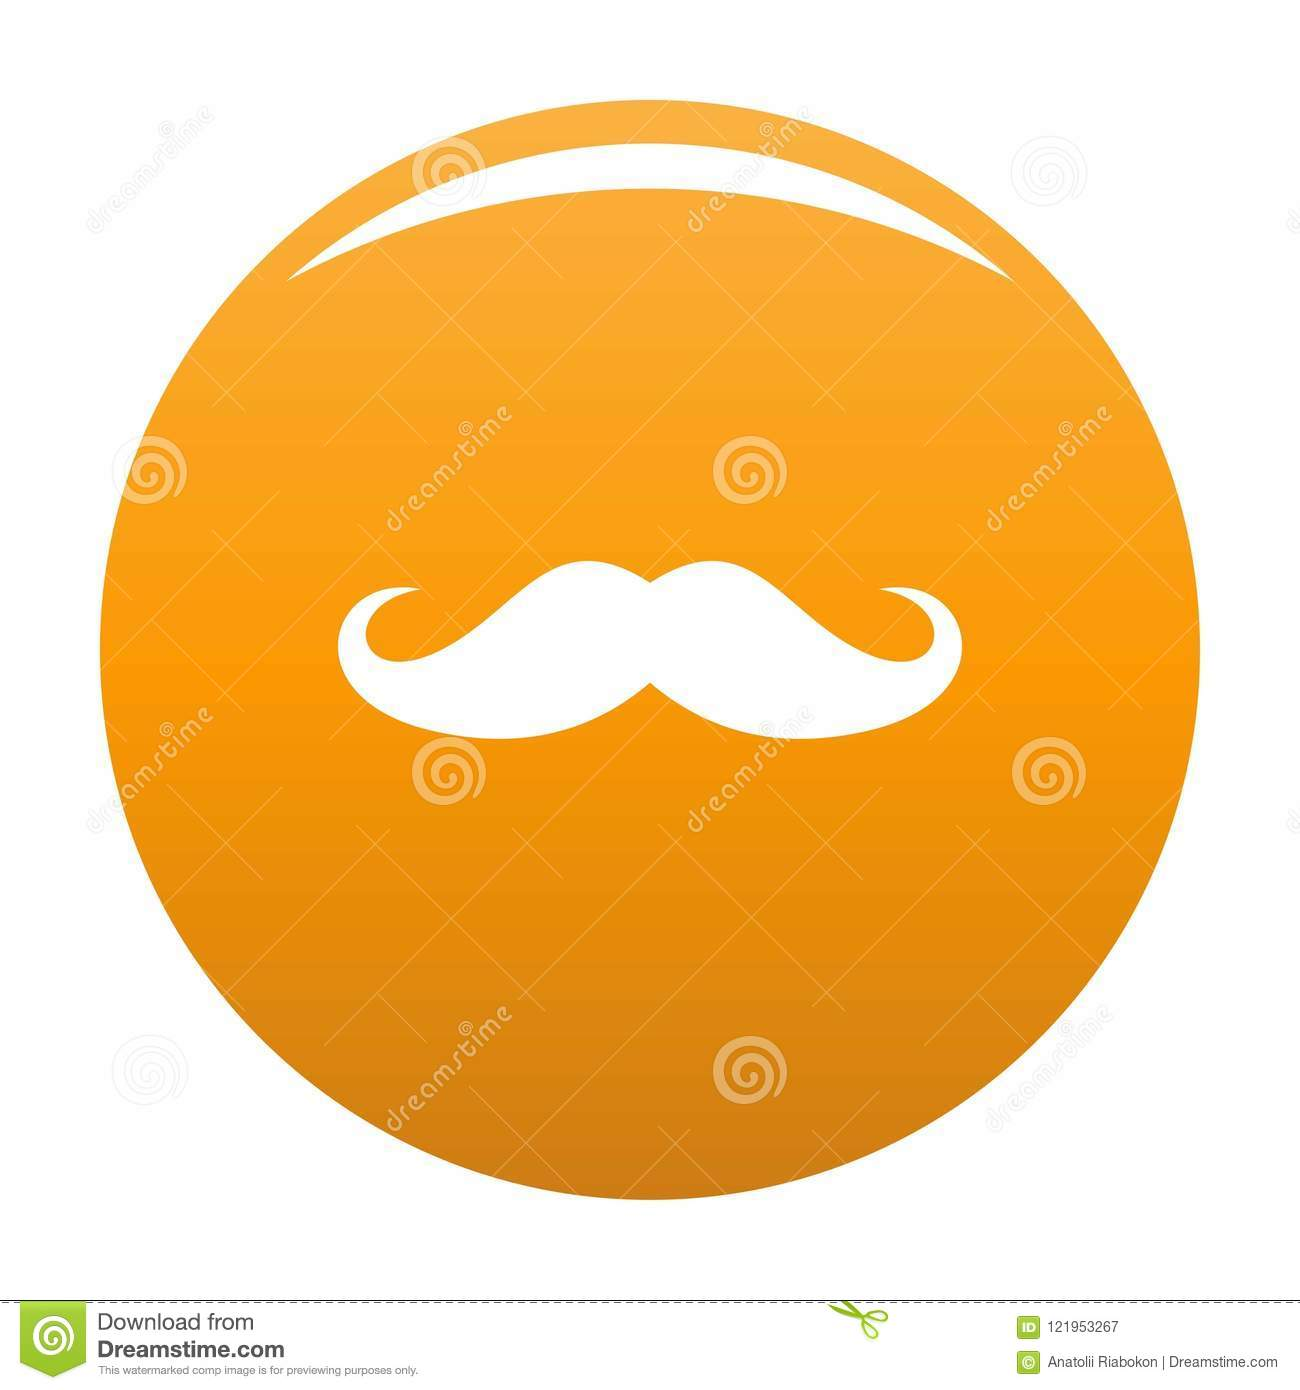 Orange de vecteur d icône de moustache de l Italie